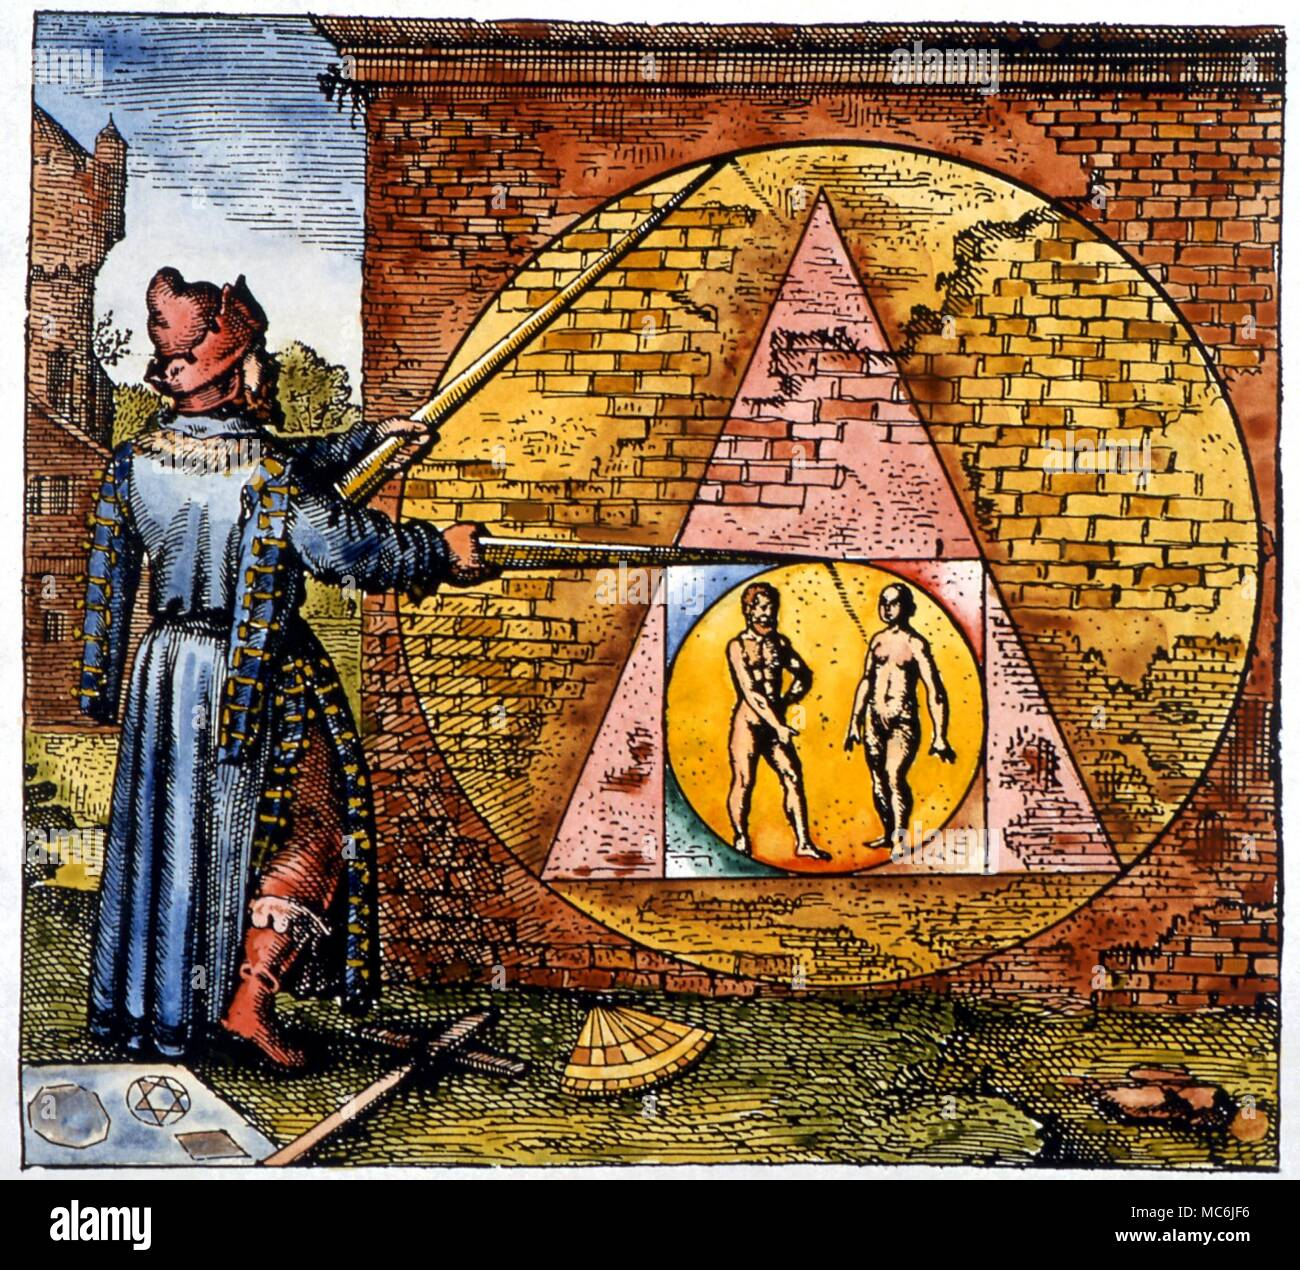 ALCHEMY - Squaring the Circle.  Magician with dividers squaring the circle, symbolic of magical operation that brings spirit (circle) into matter (square).  From Michael Maier, Atalanta Fugiens, 1618 - Stock Image